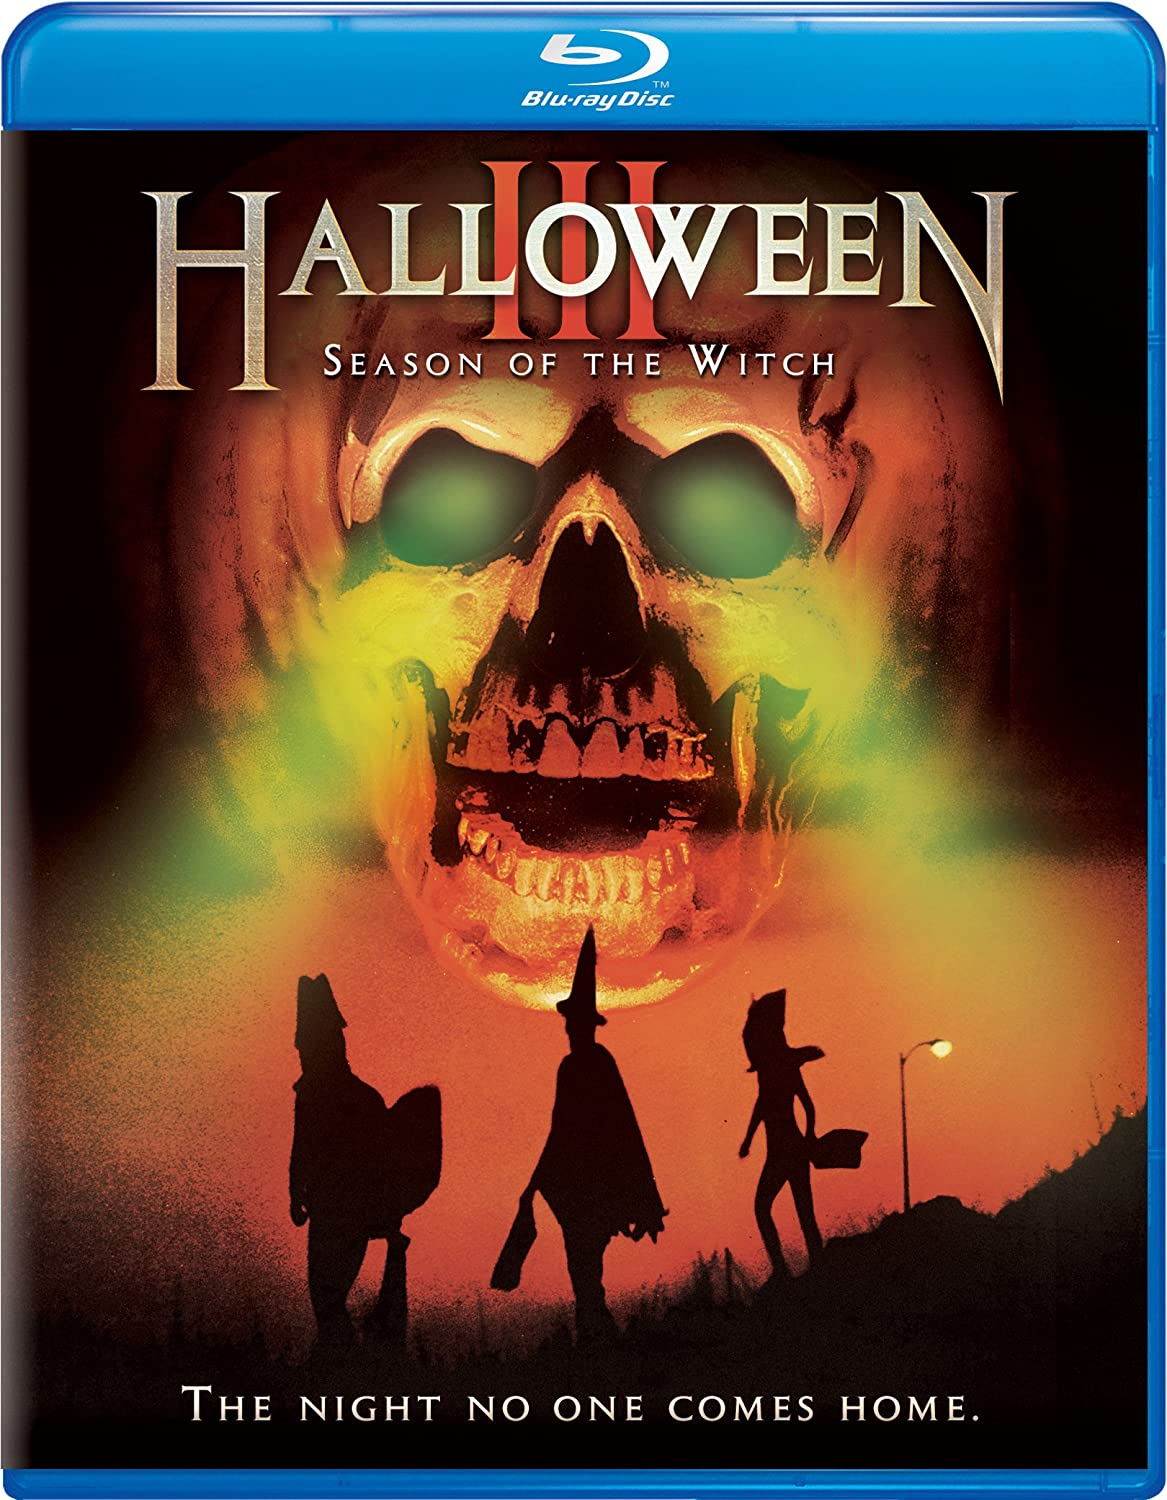 Amazon.com: Halloween III: Season of the Witch [Blu-ray]: Tom ...